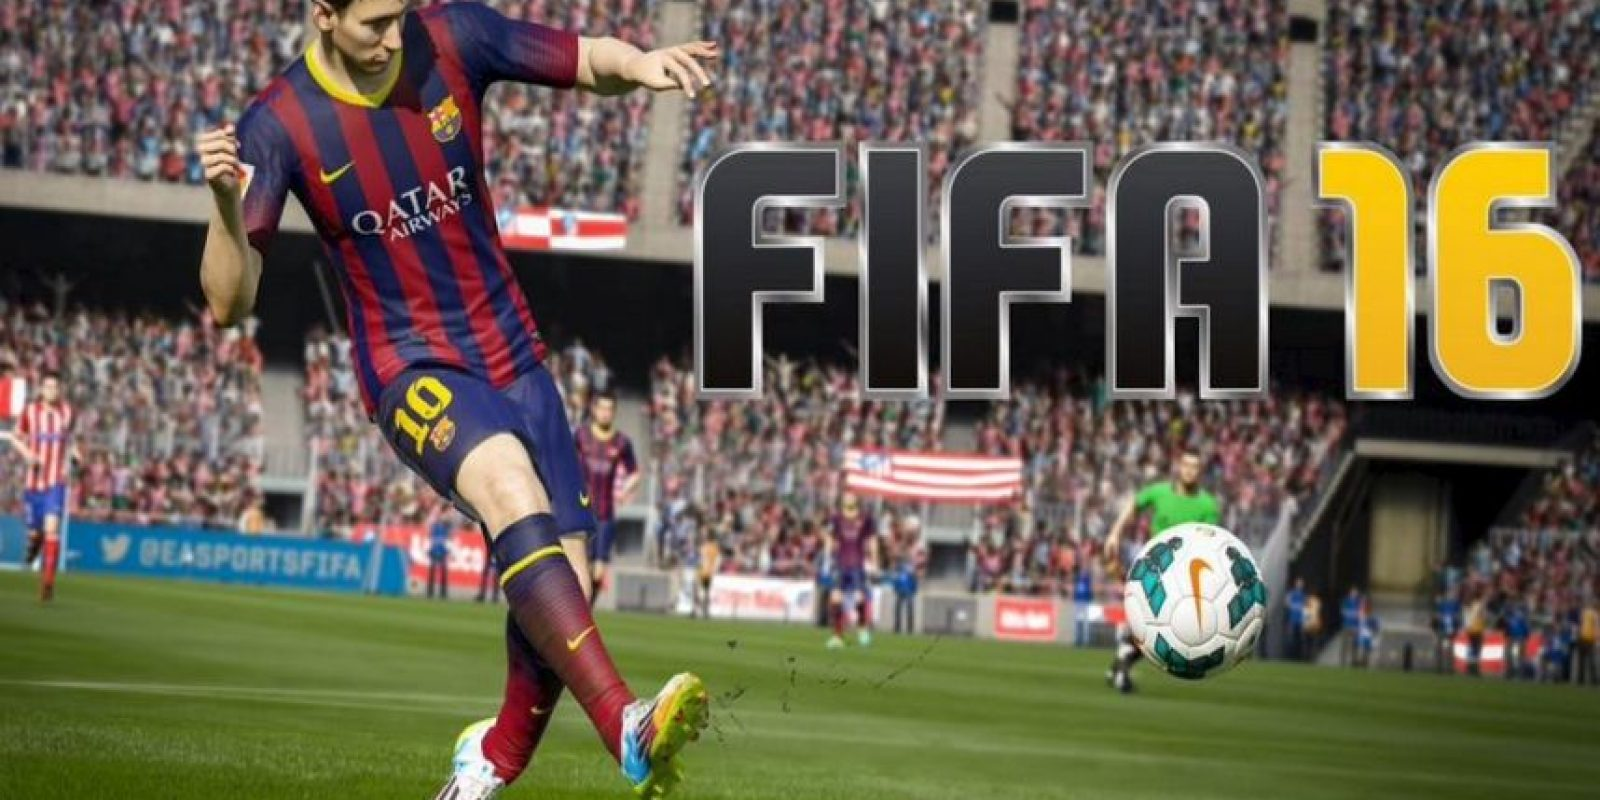 6) Mayor inteligencia para interceptar pases. Foto: EA Sports